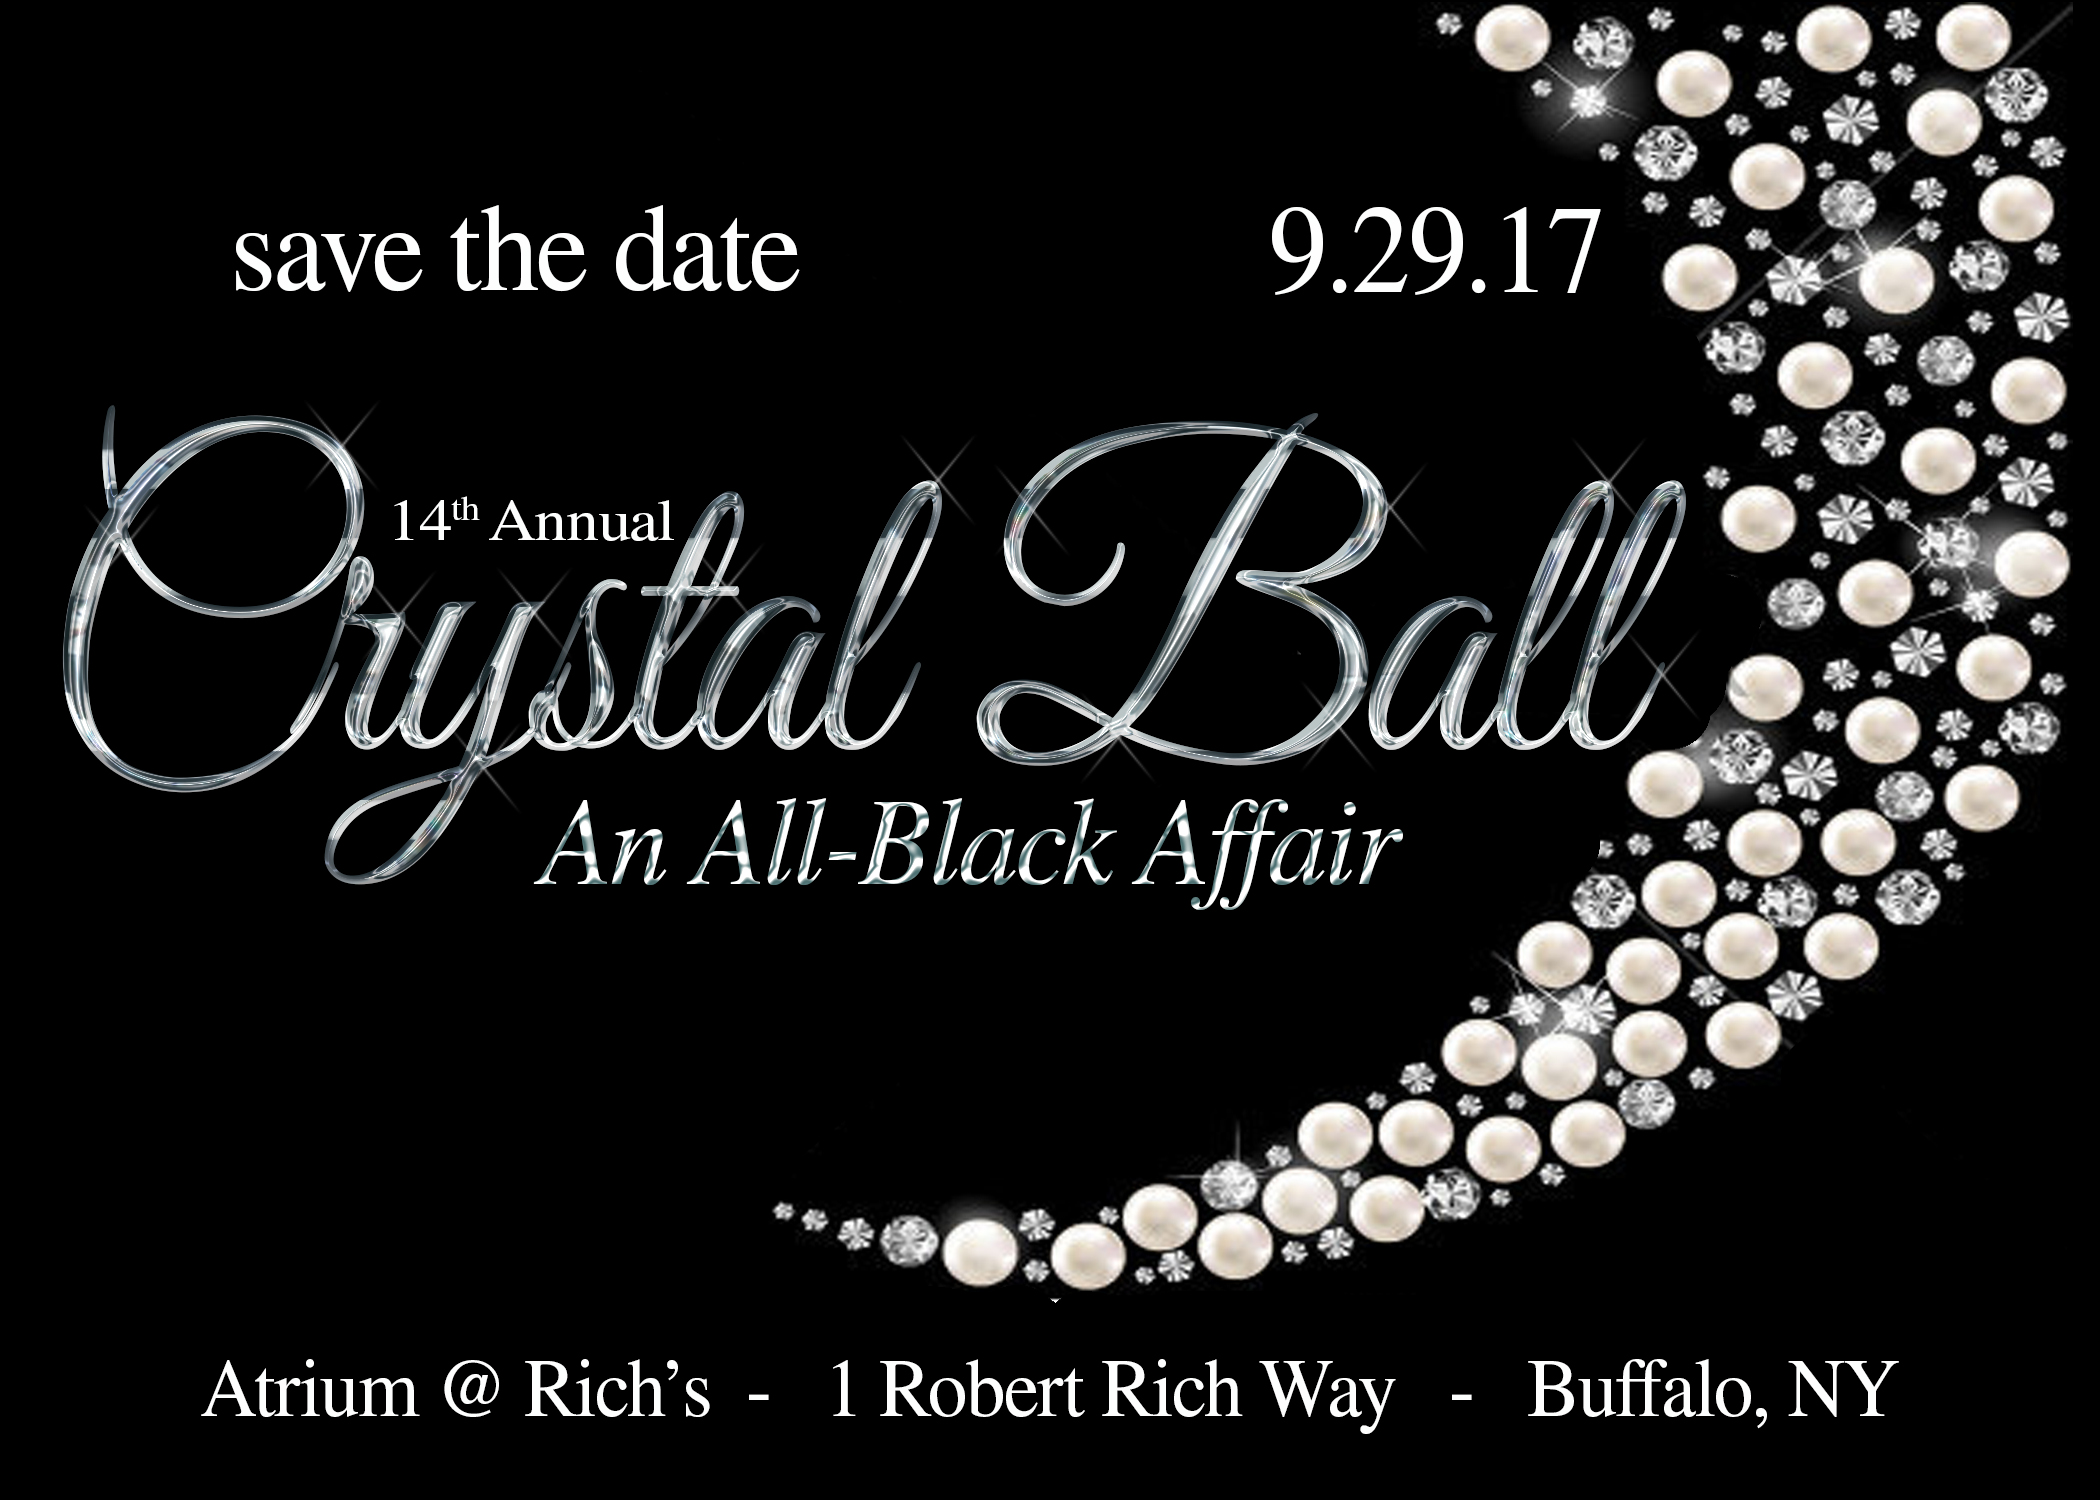 Crystal_Ball_2017_save_the_date.jpg